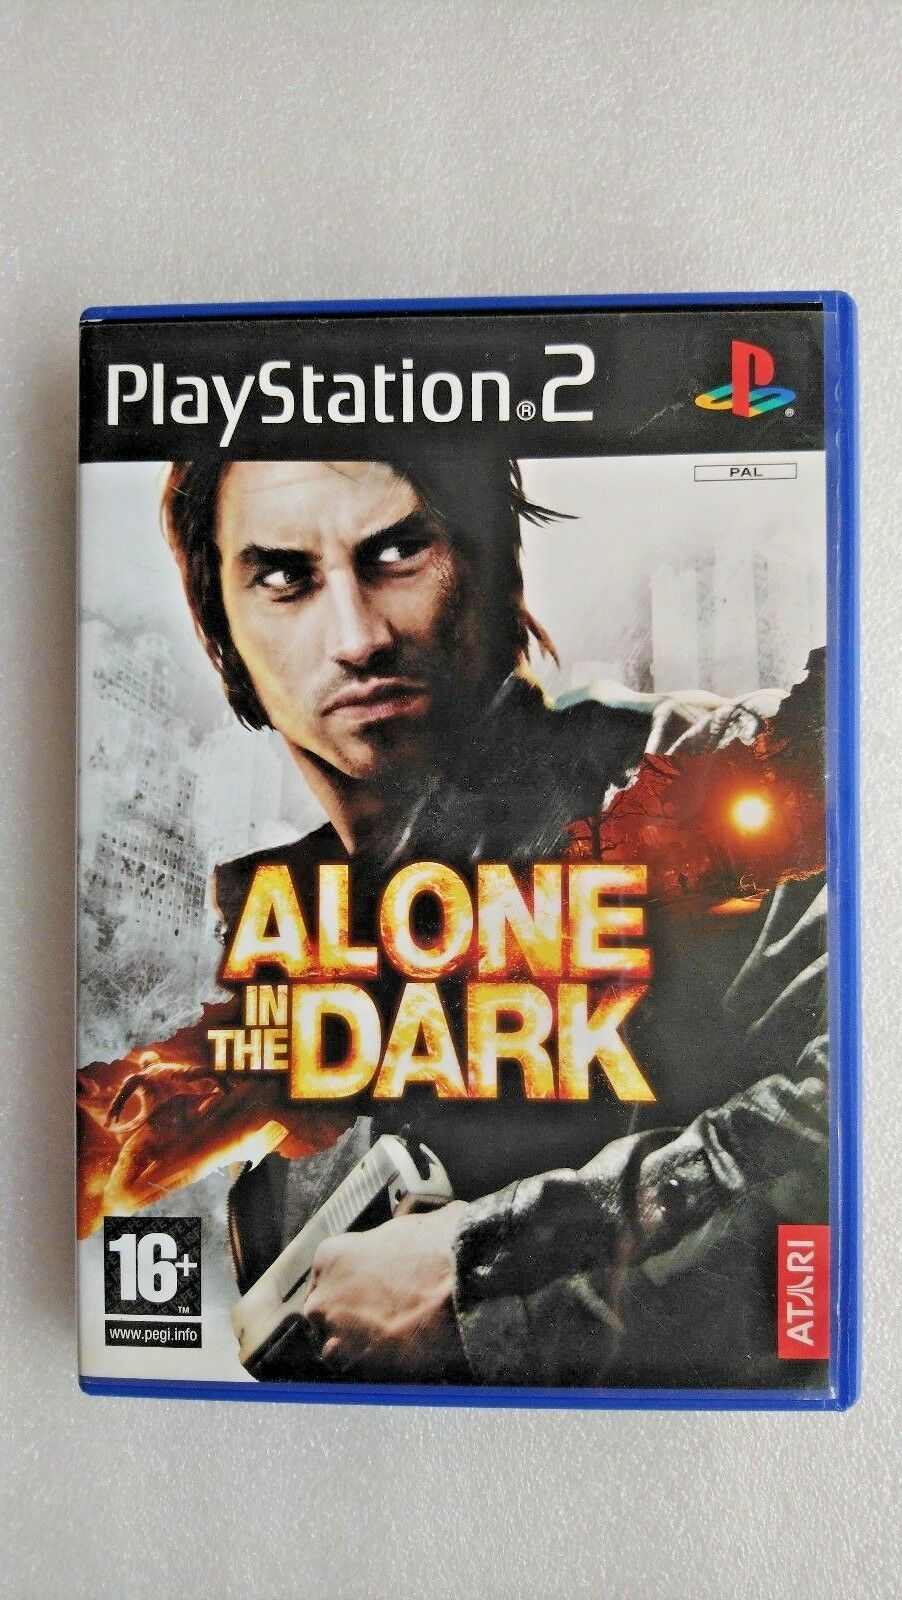 Alone in the Dark (Sony PlayStation 2, 2008) - European Version